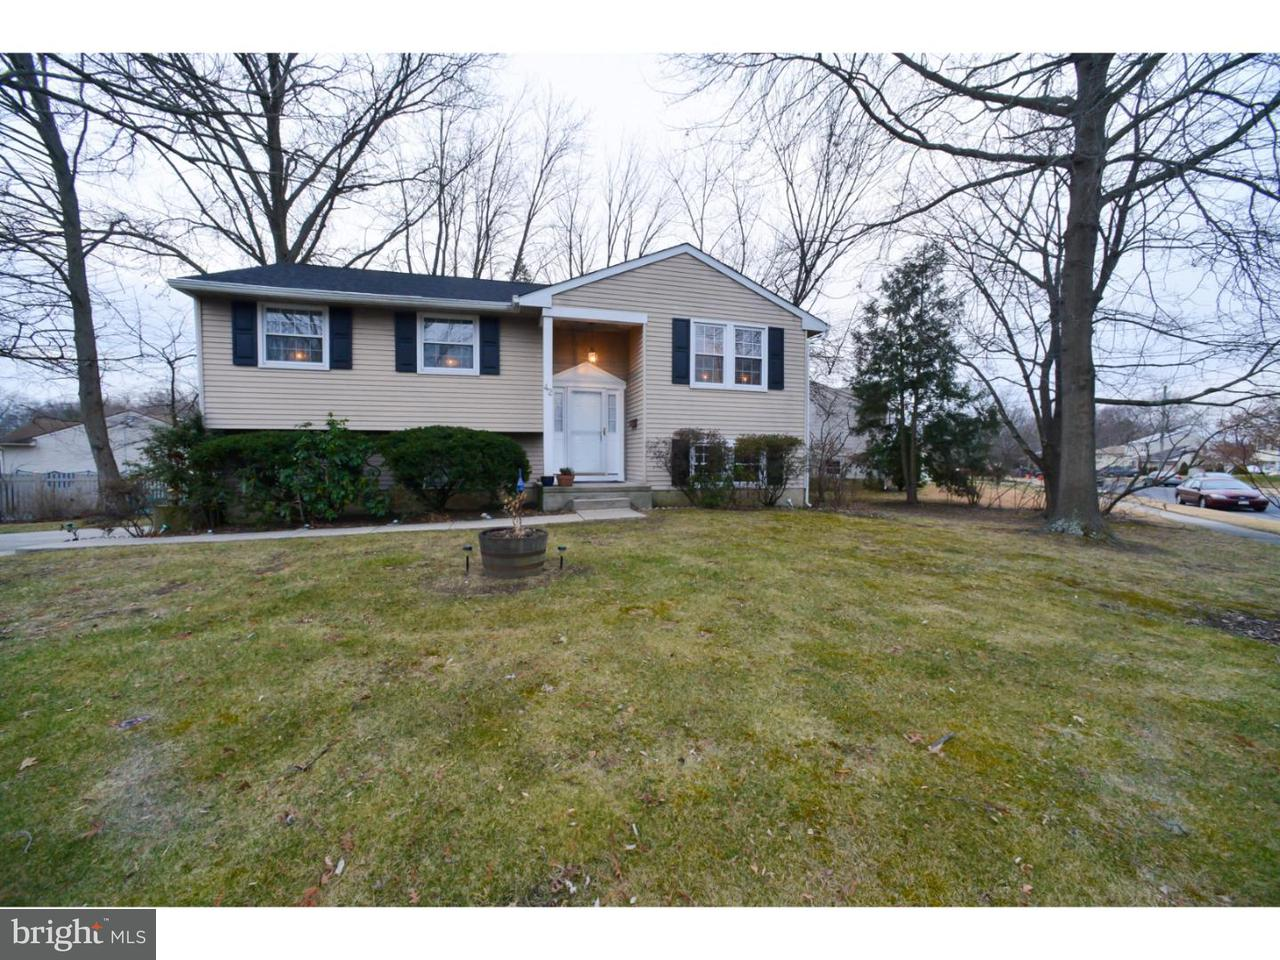 Single Family Home for Sale at 42 OVERHILL Road Stratford, New Jersey 08084 United States